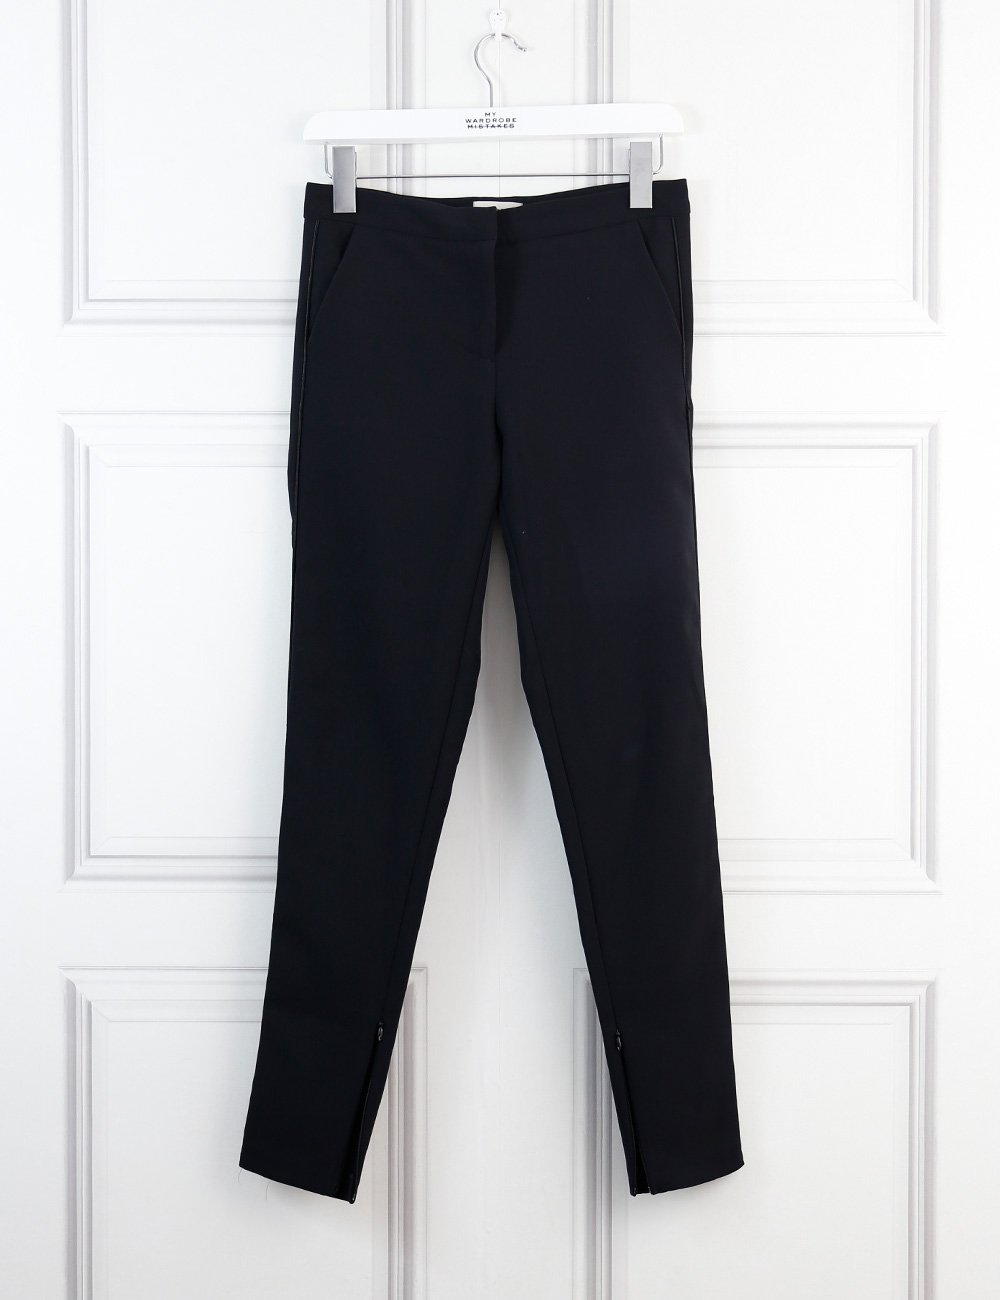 Hoss Intropia black tailored trousers with black satin piping and ankle zips 6Uk